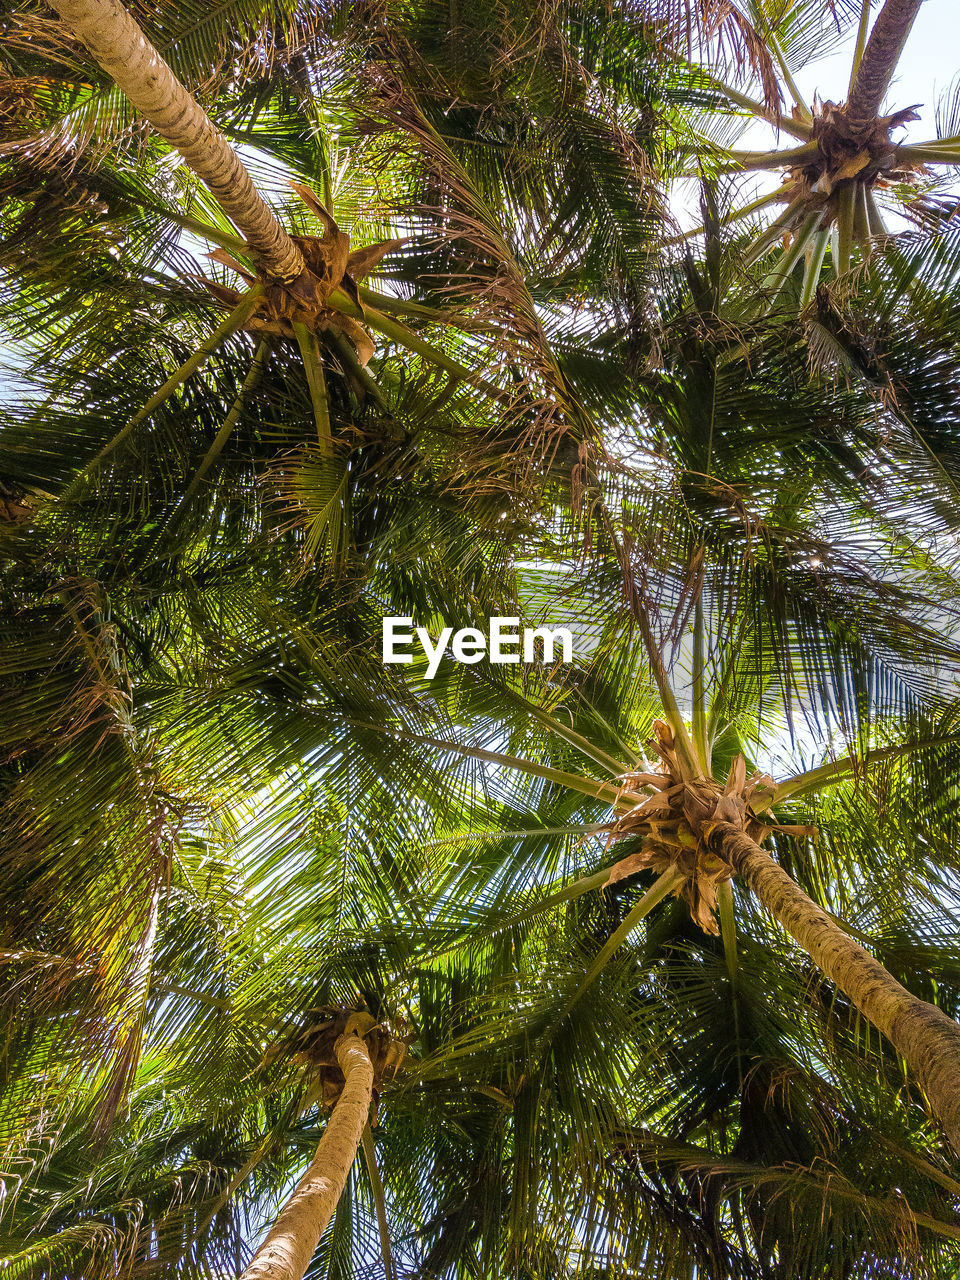 plant, tree, palm tree, low angle view, growth, tropical climate, no people, trunk, nature, tree trunk, day, beauty in nature, outdoors, green color, close-up, leaf, branch, plant part, backgrounds, tall - high, palm leaf, coconut palm tree, directly below, tropical tree, tree canopy